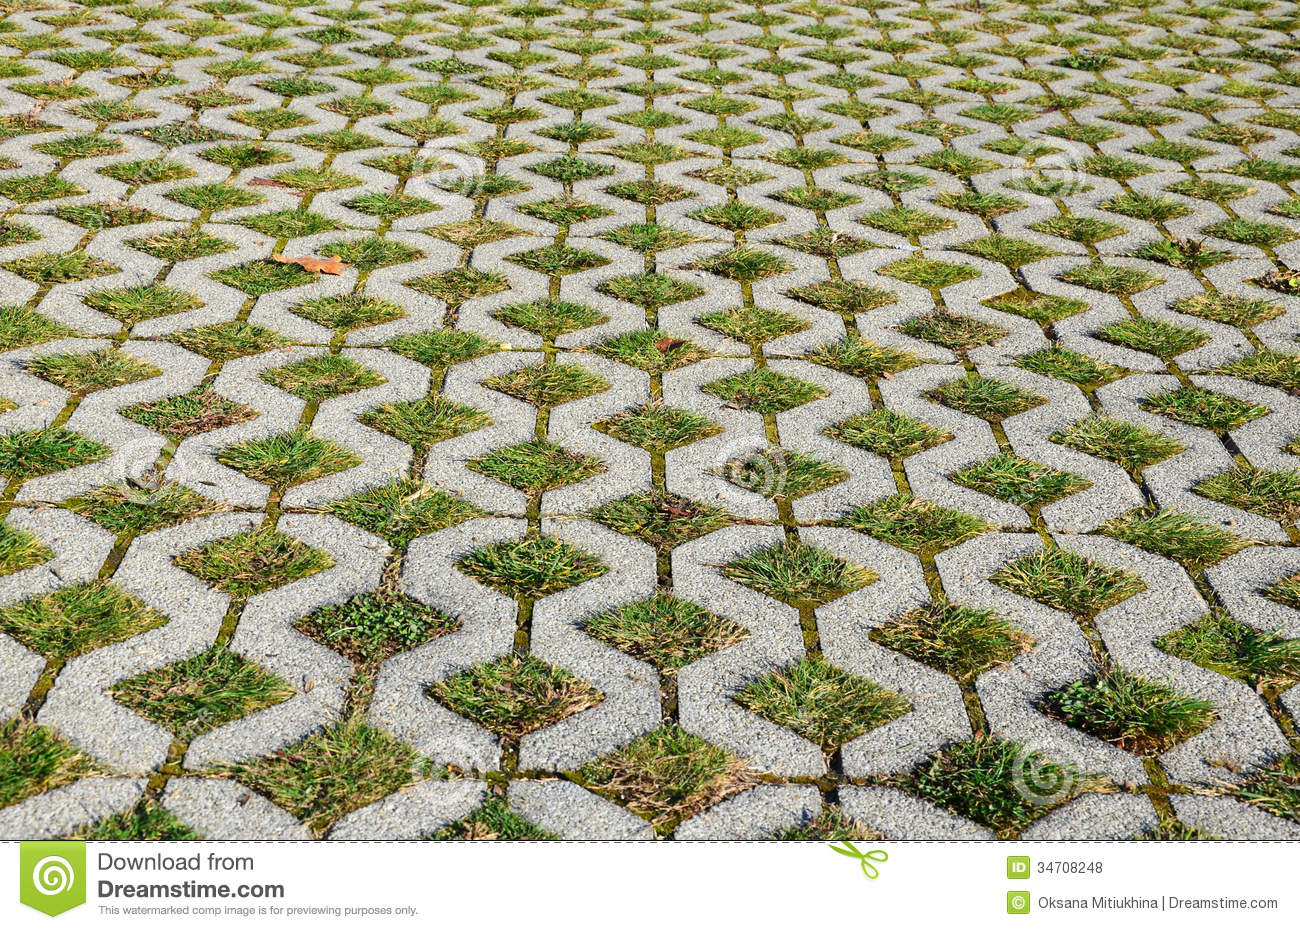 Grass Pavement Royalty Free Stock Photos Image 34708248